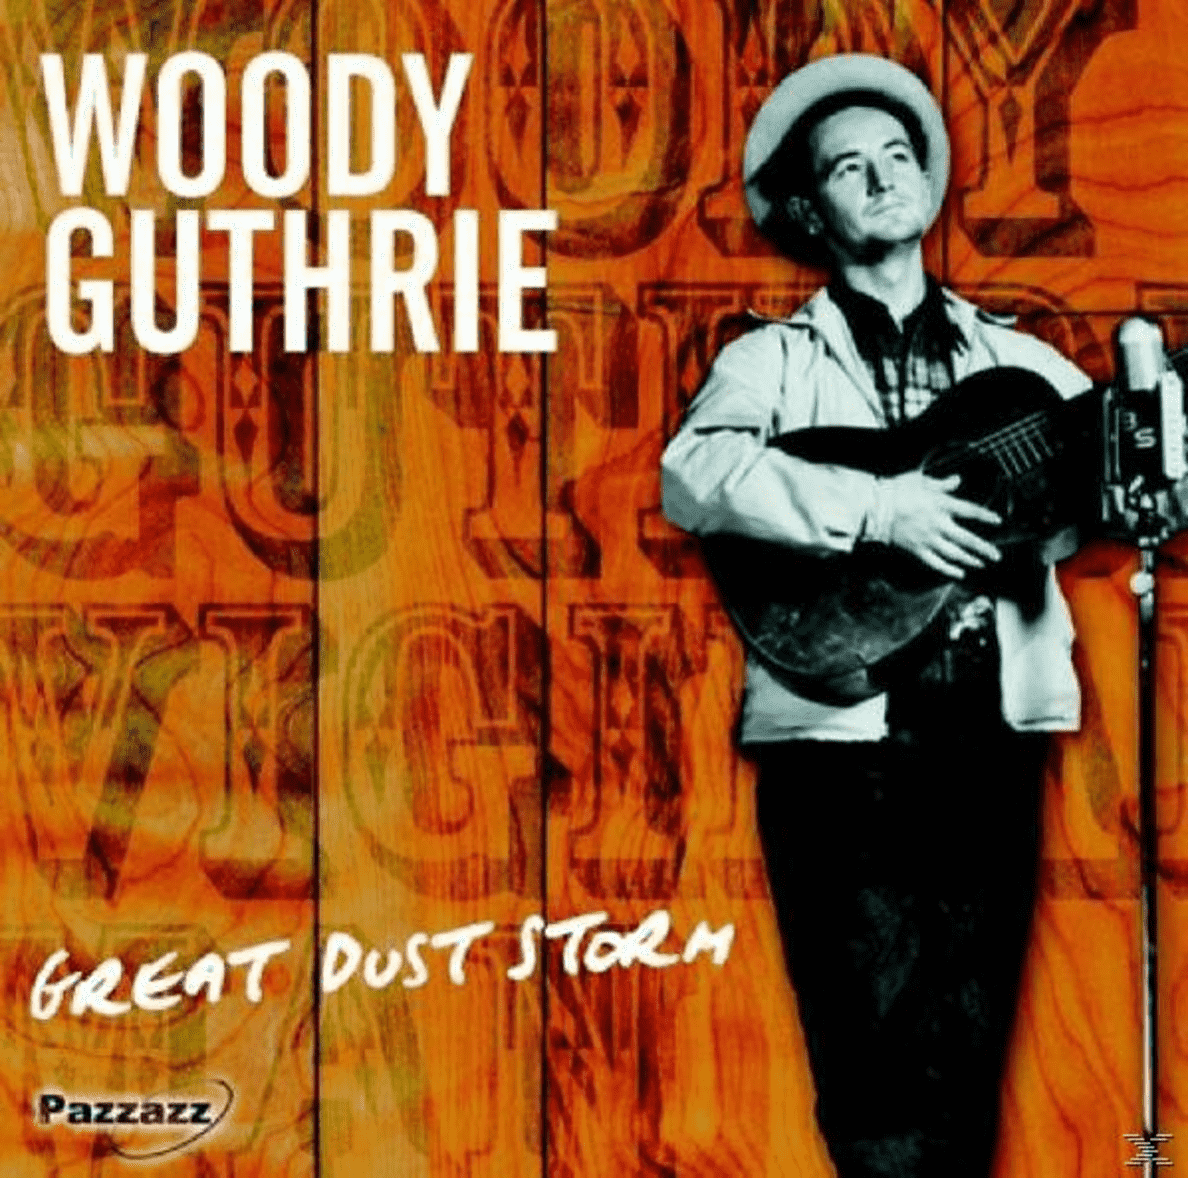 Great Dust Storm Woody Guthrie auf CD